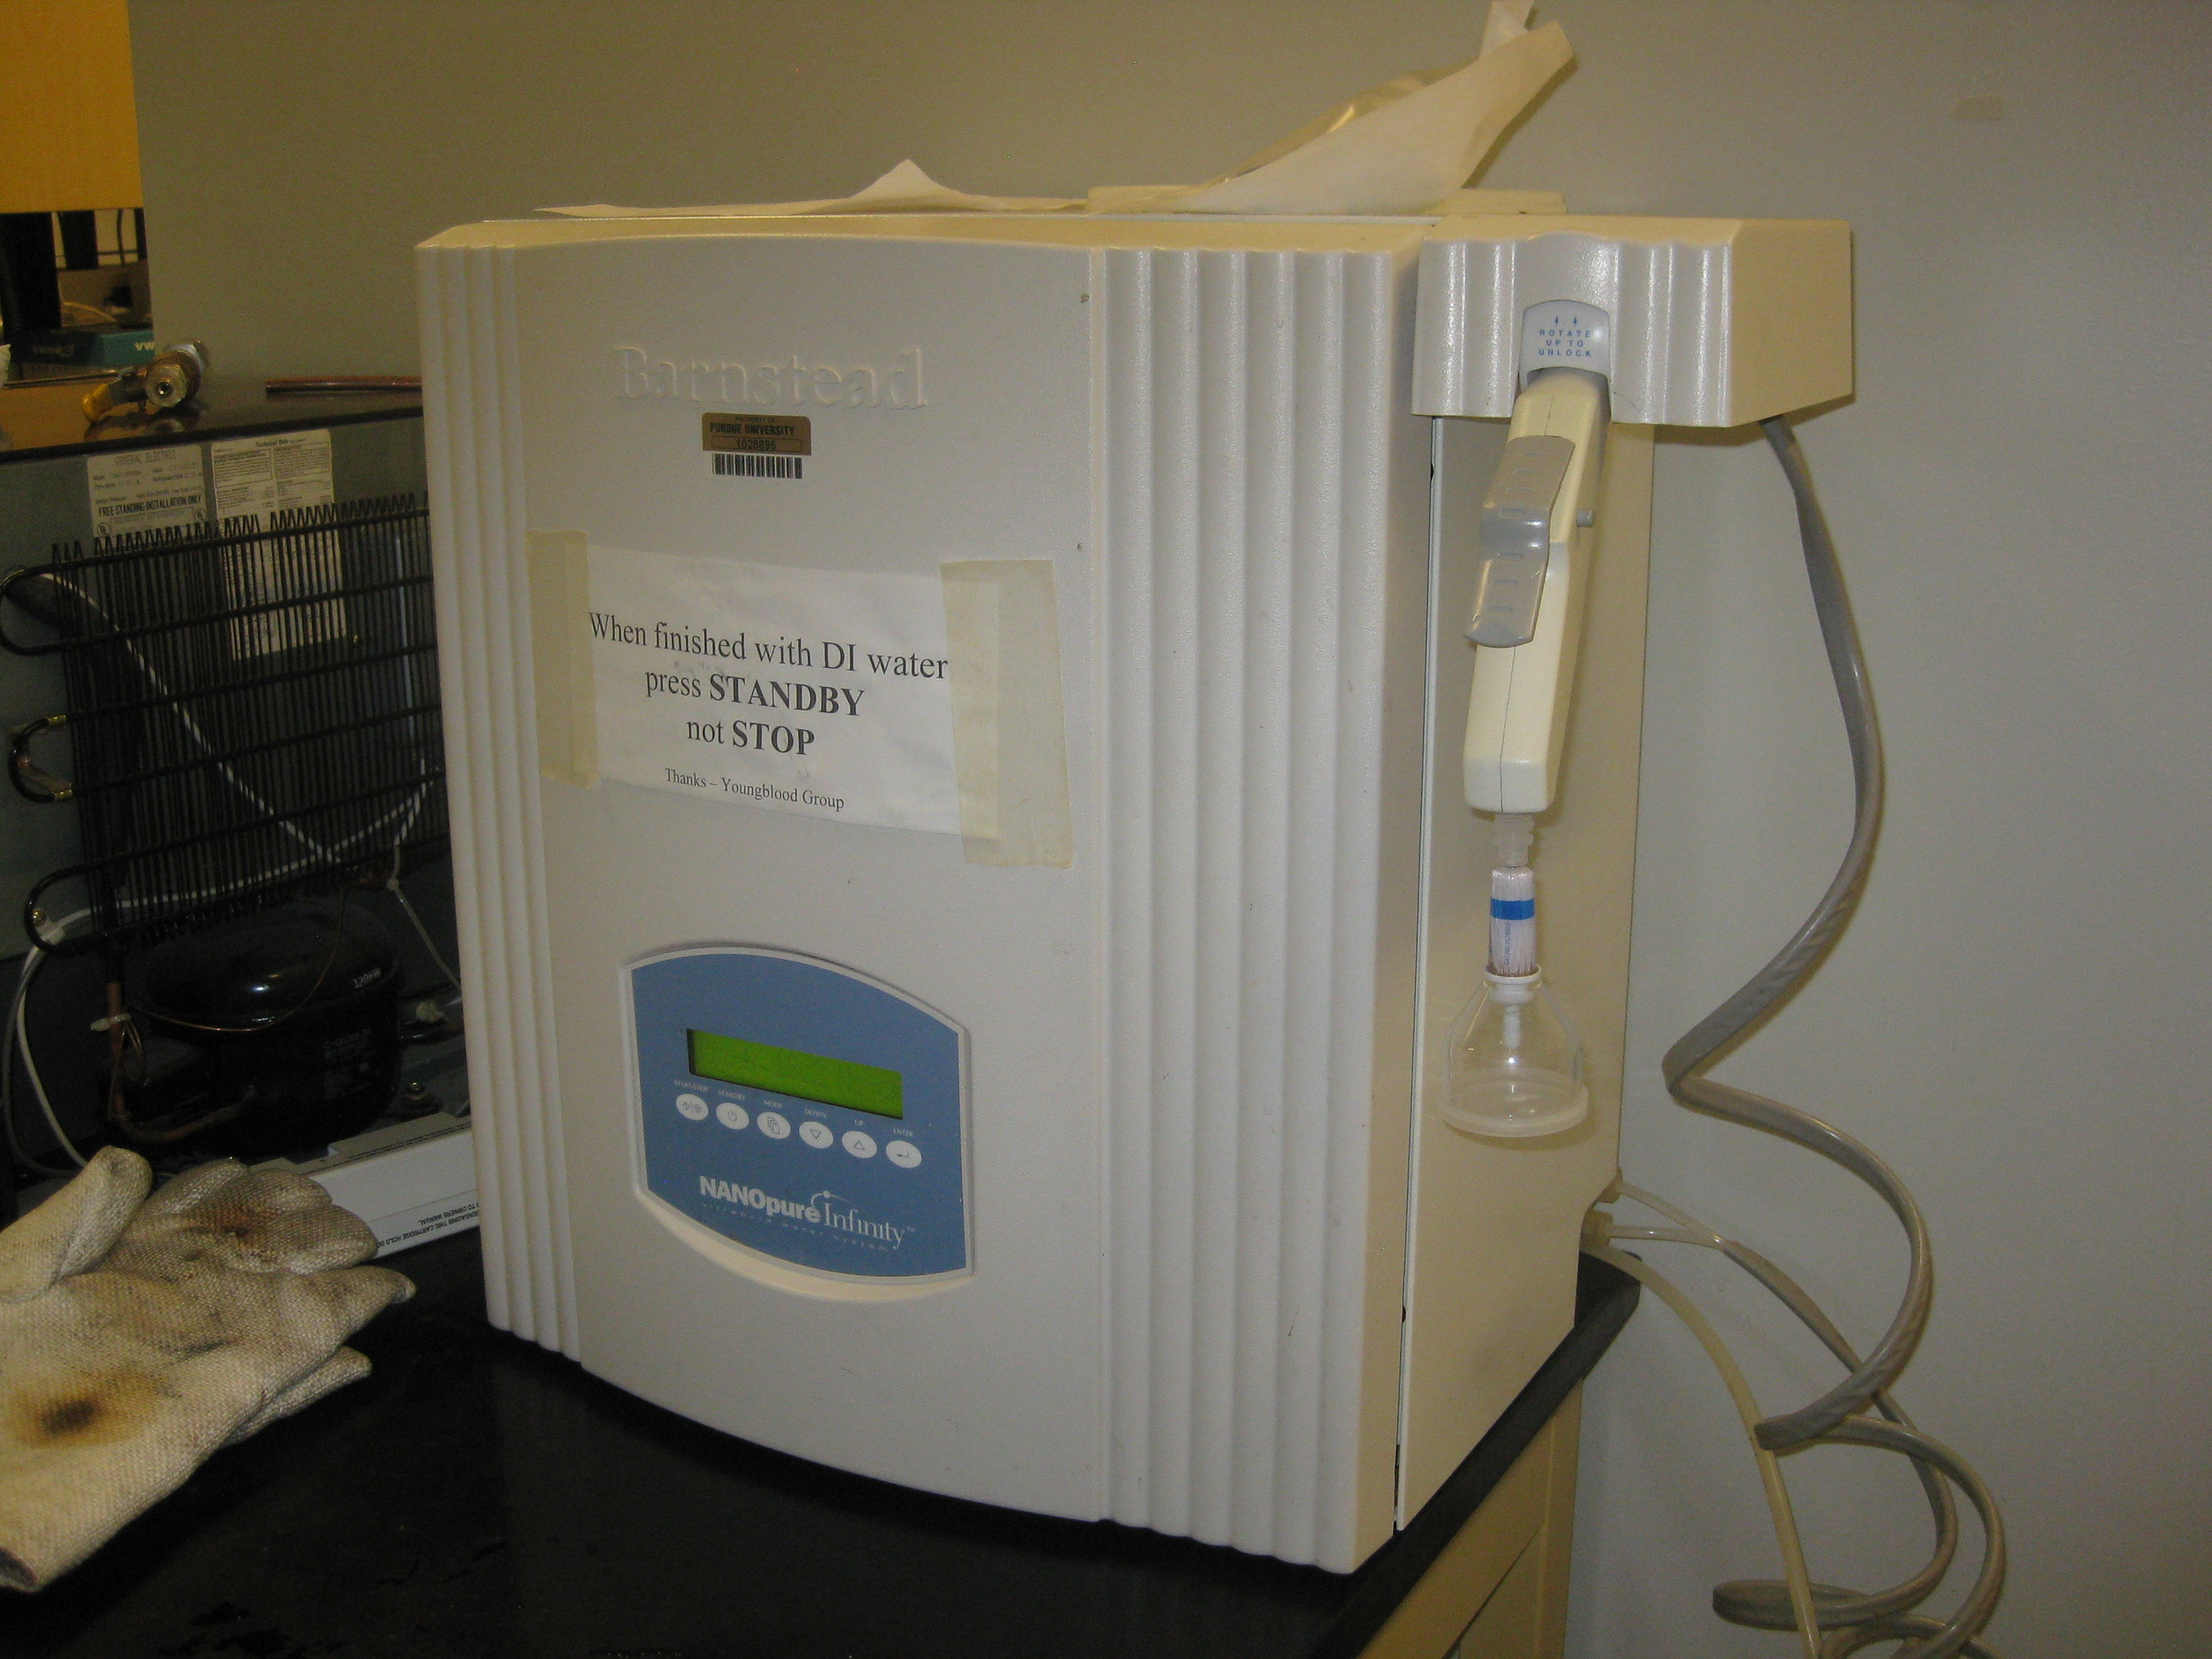 Barnstead nanopure water system